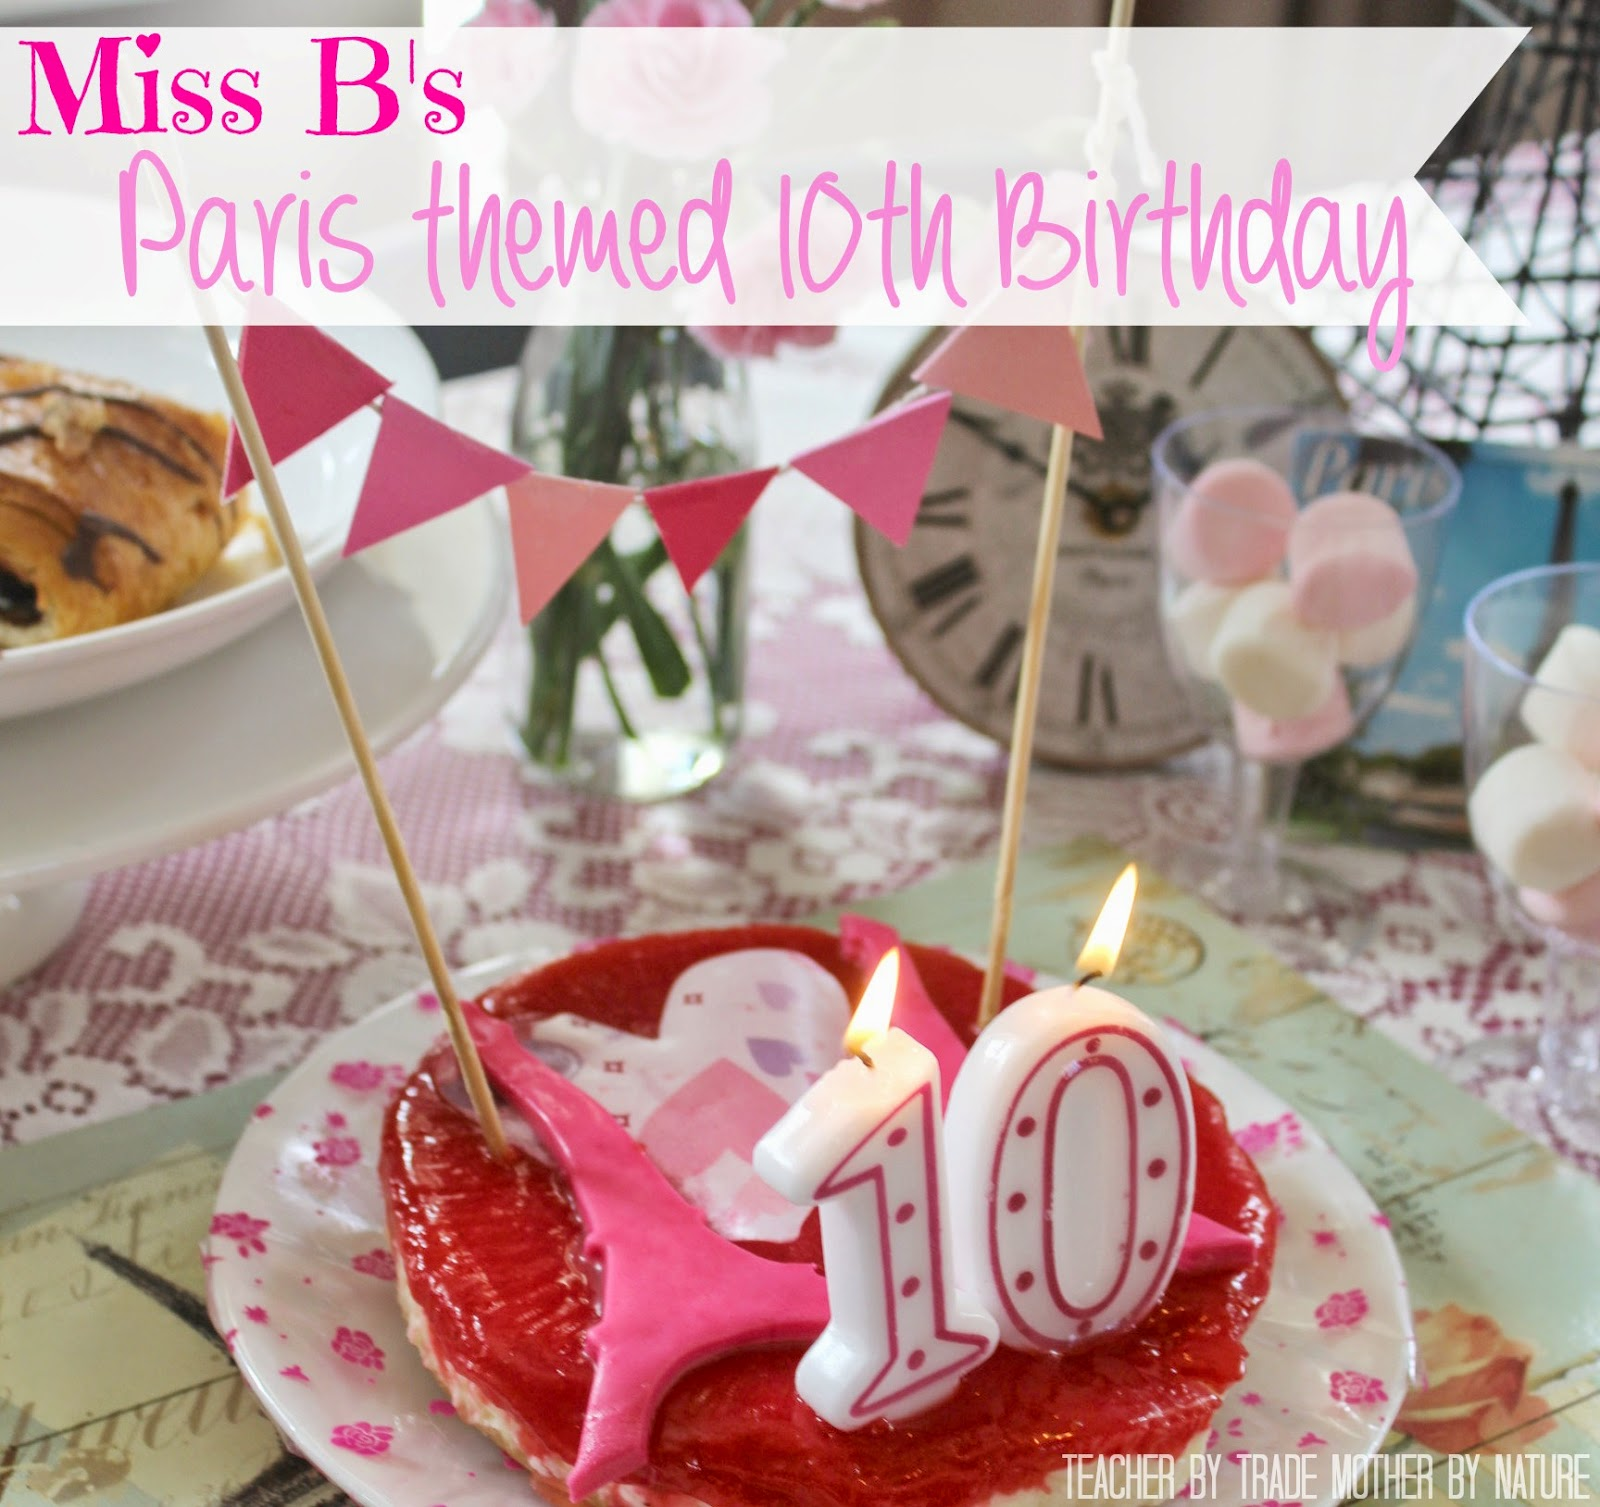 kids parties: miss b's paris themed 10th birthday - teacher by trade